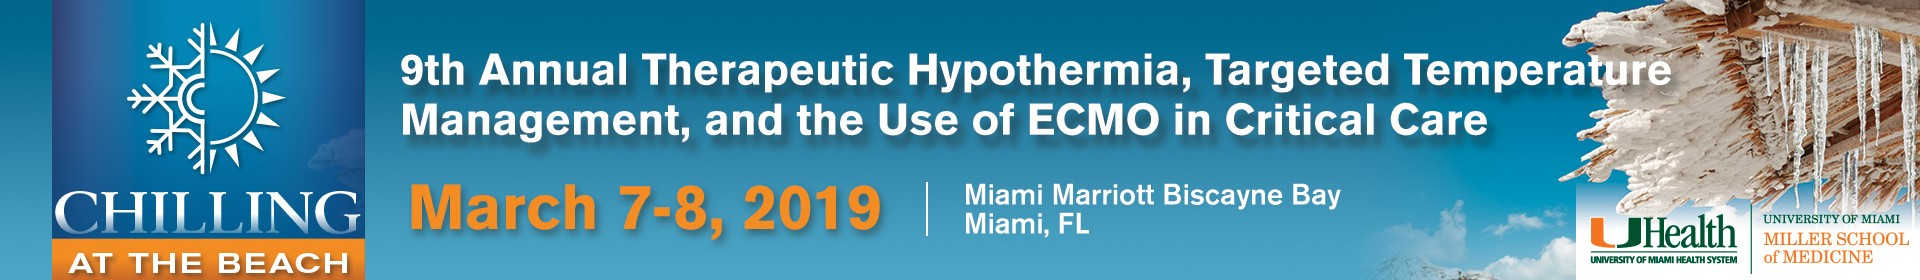 9th Annual Therapeutic Hypothermia, Targeted Temperature Management, and the Use of ECMO in Critical Care